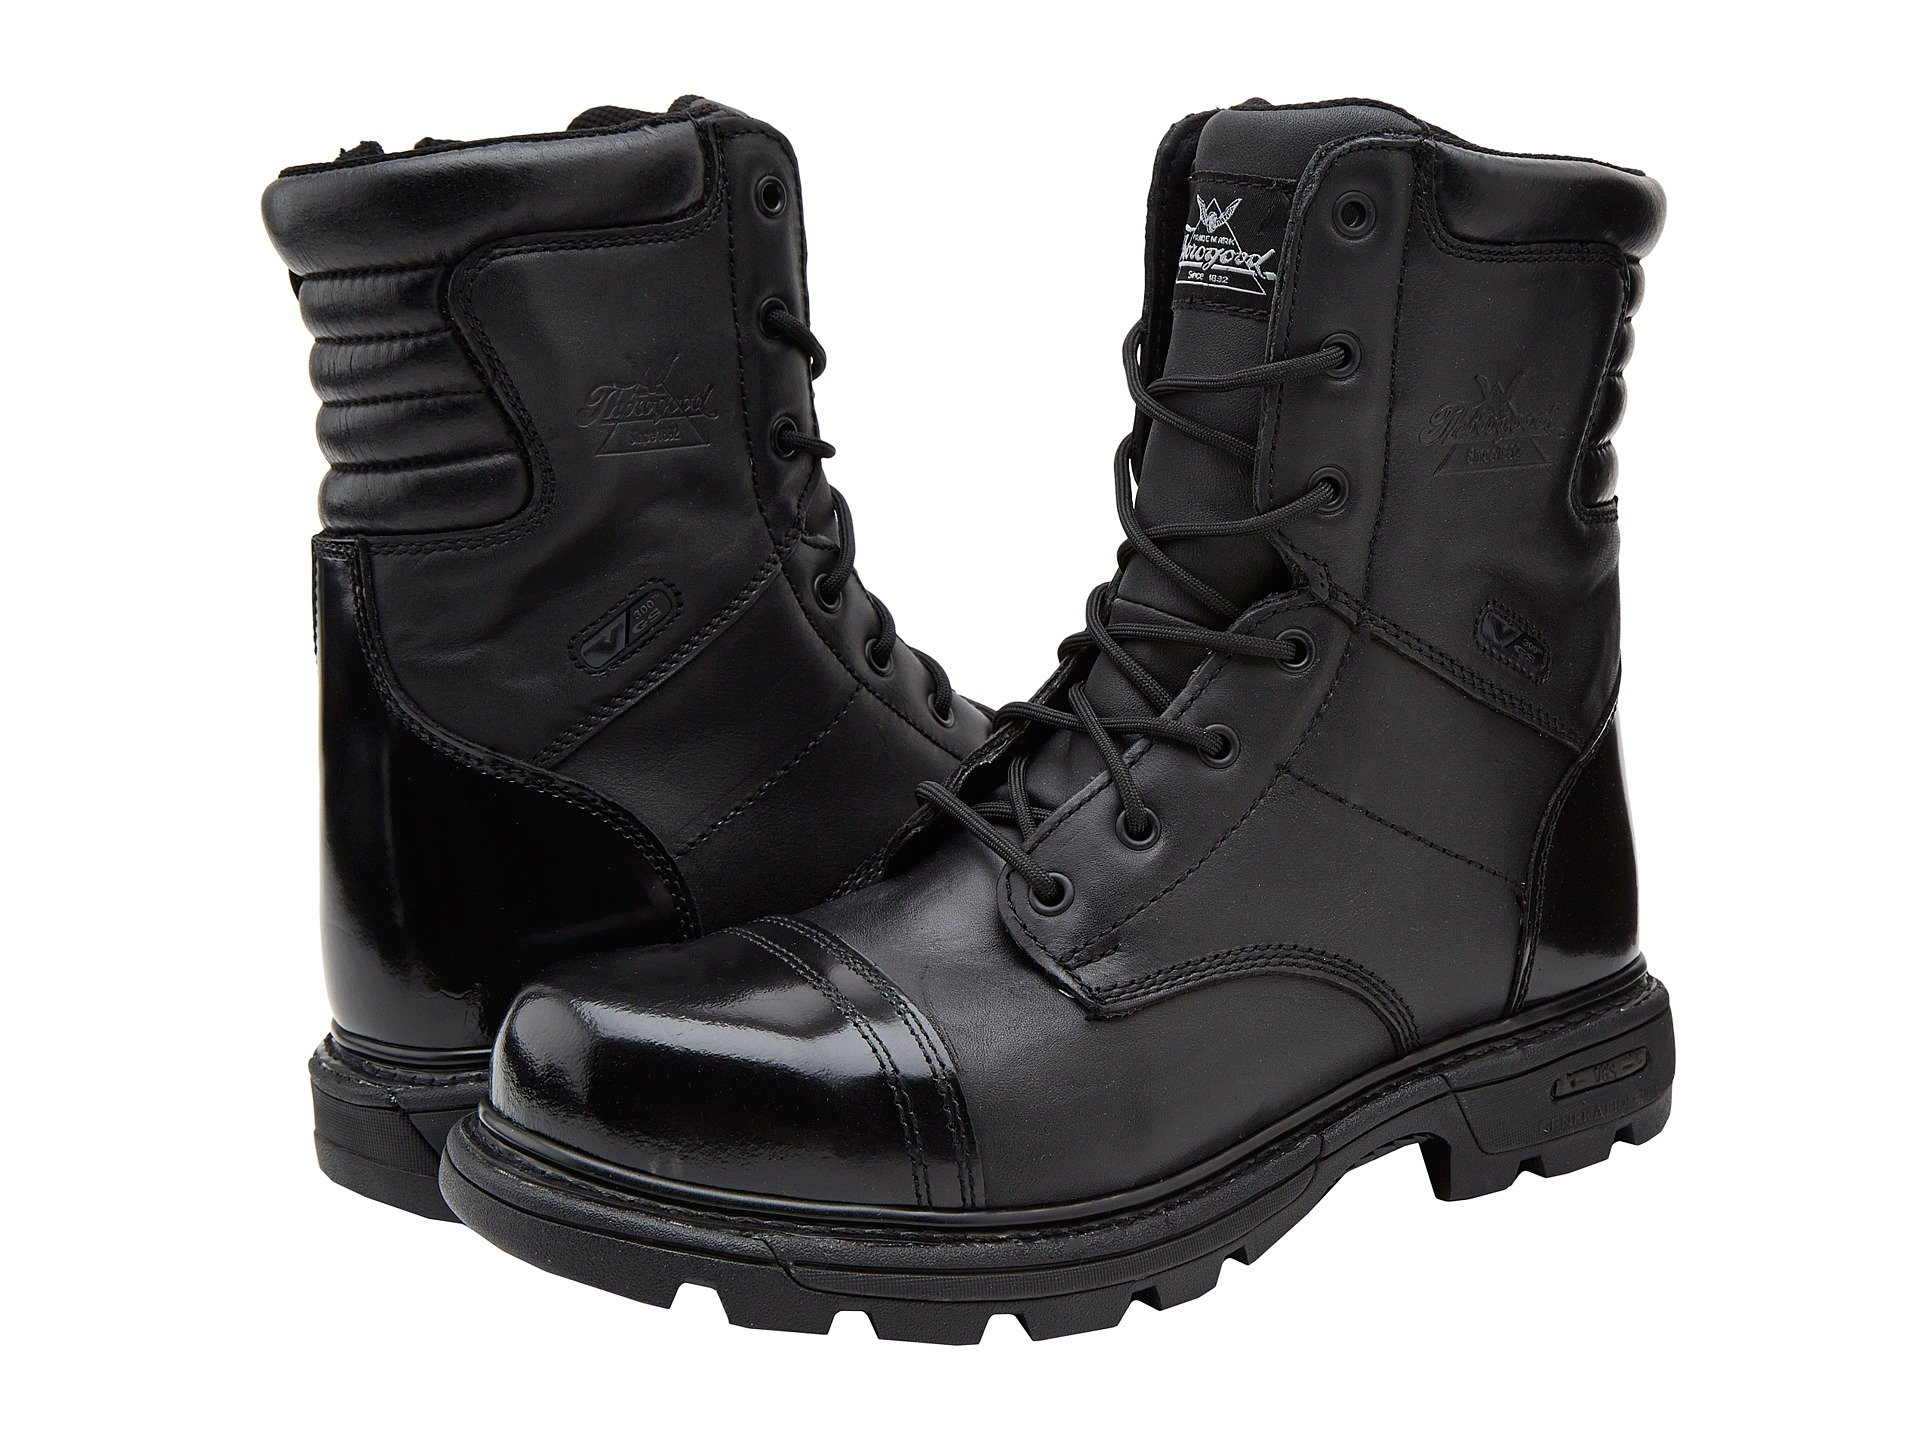 Thorogood 8 Inch Side Zipper Work Boot At Zappos Com